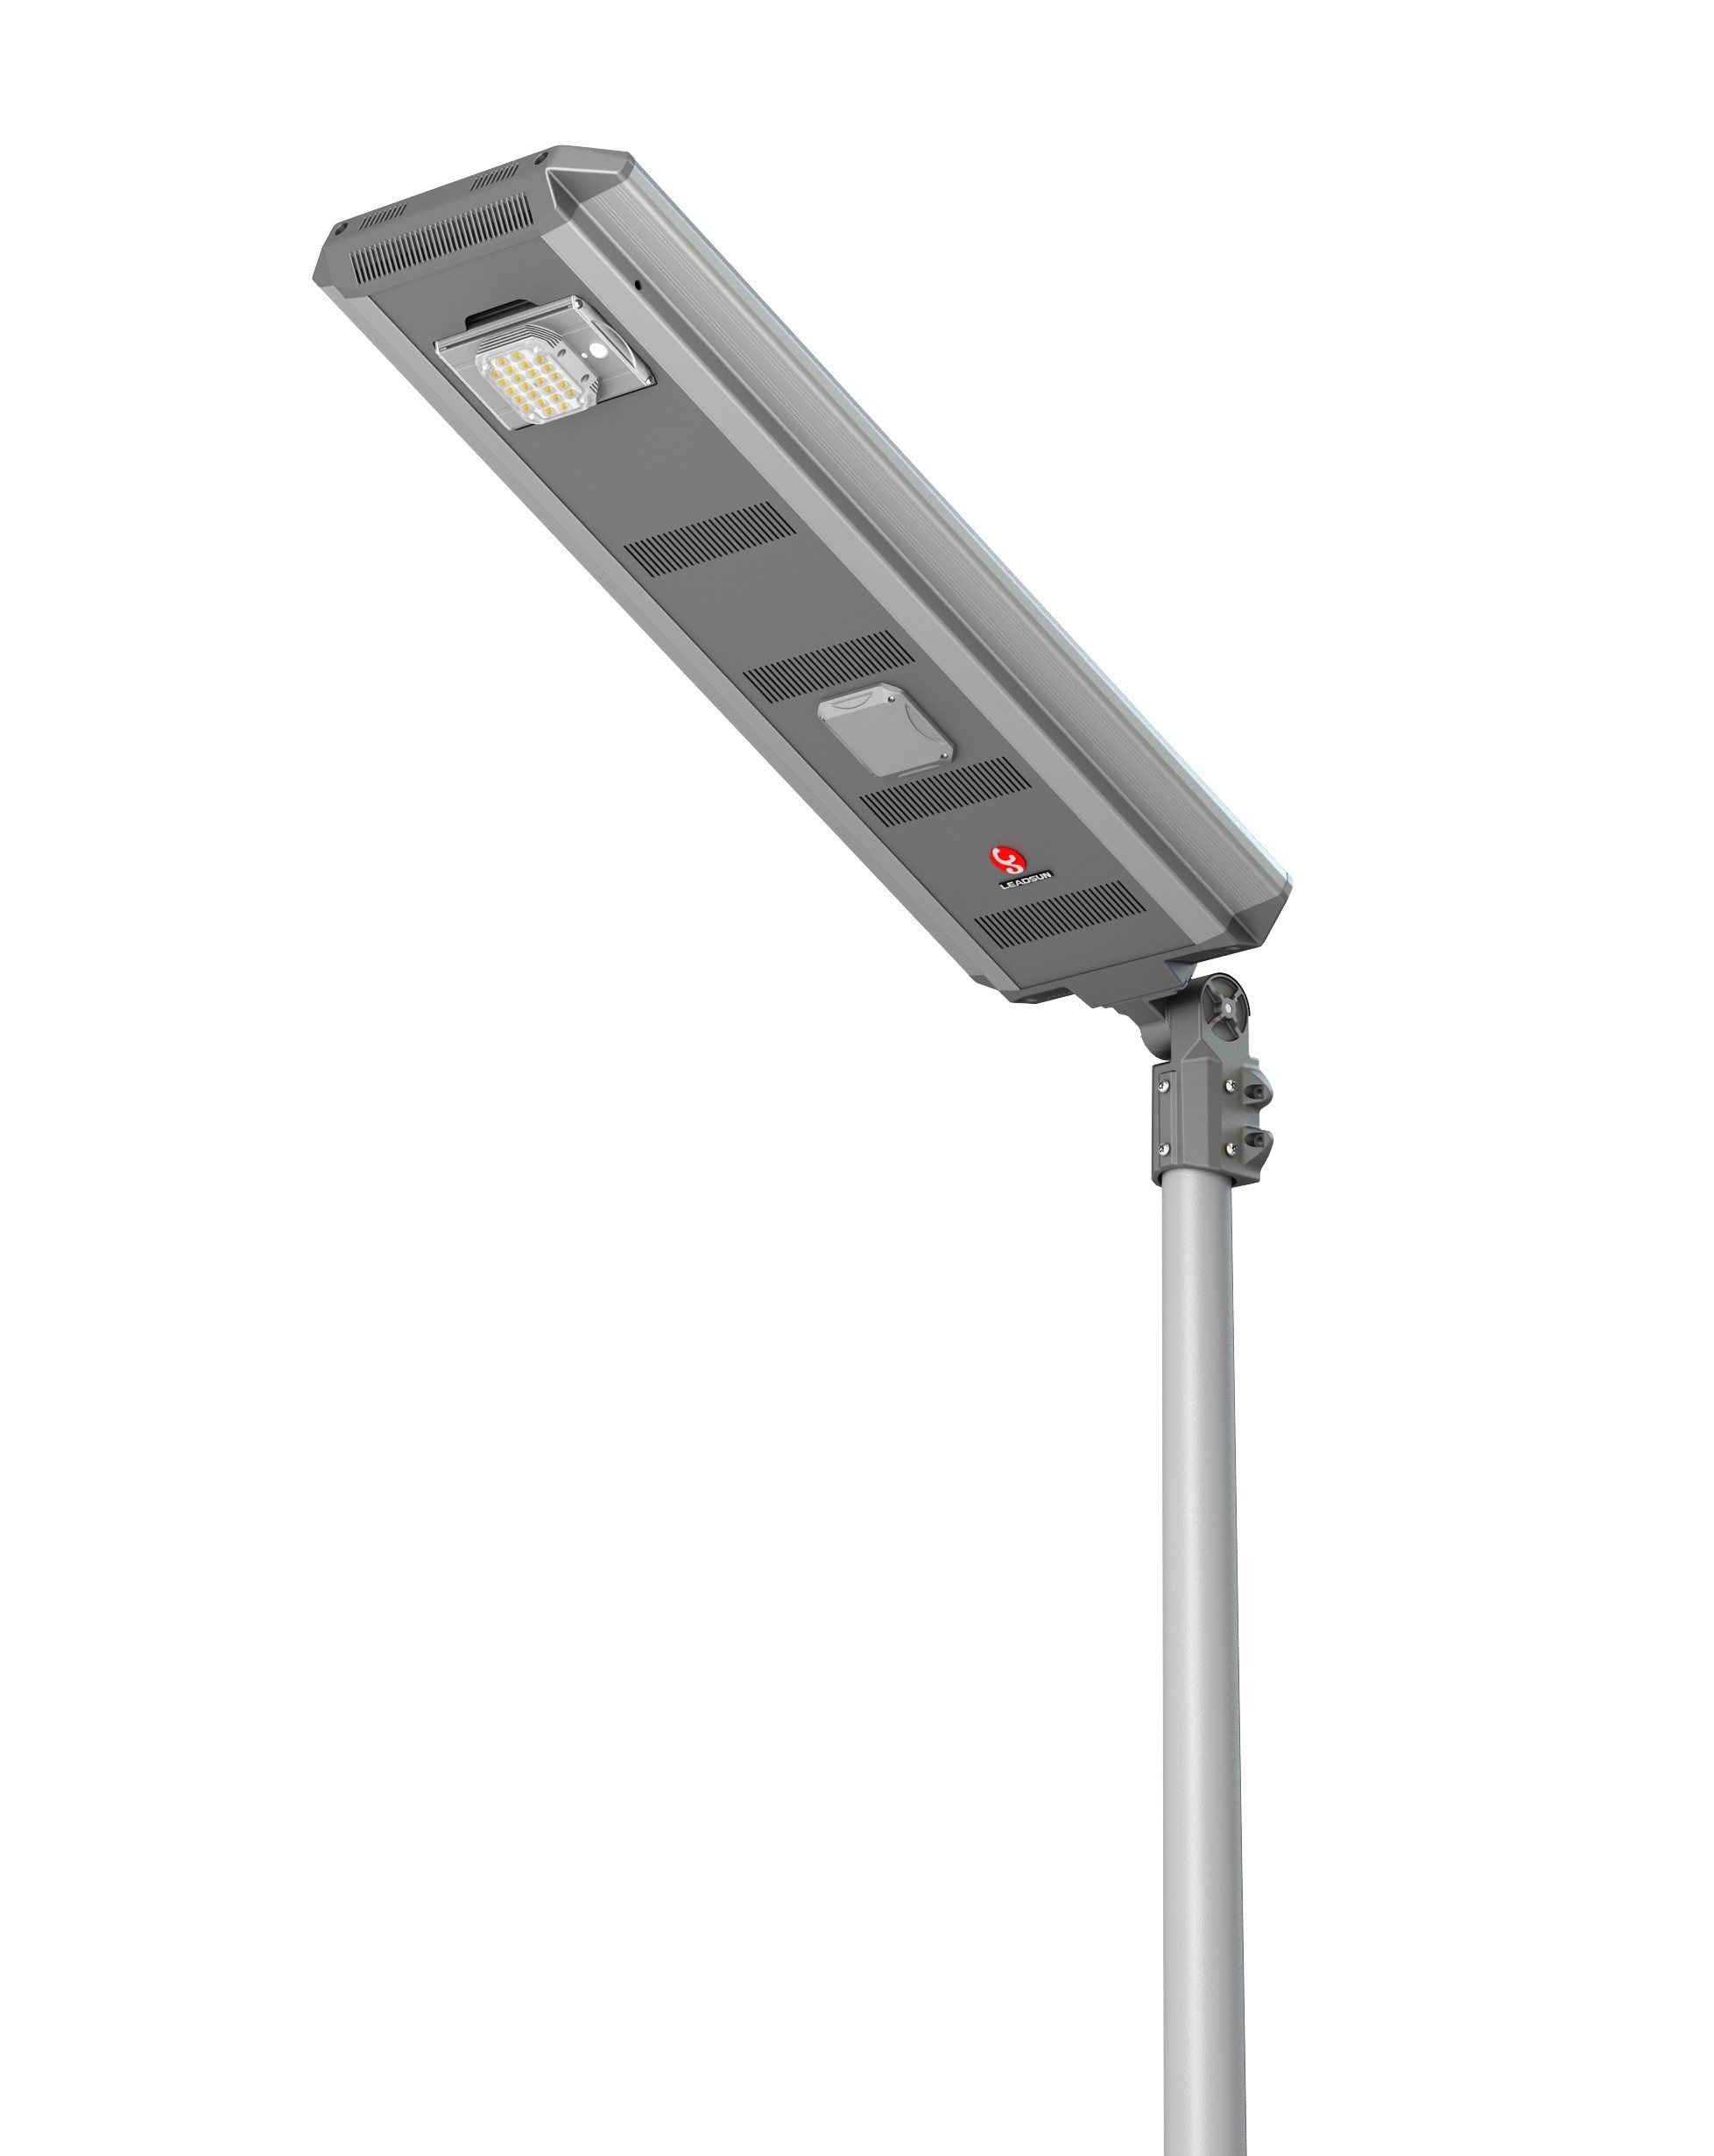 HC830AE3C8030PMC - Solar Street Light AE3C all in One, 80W PV, 30W Cree LED